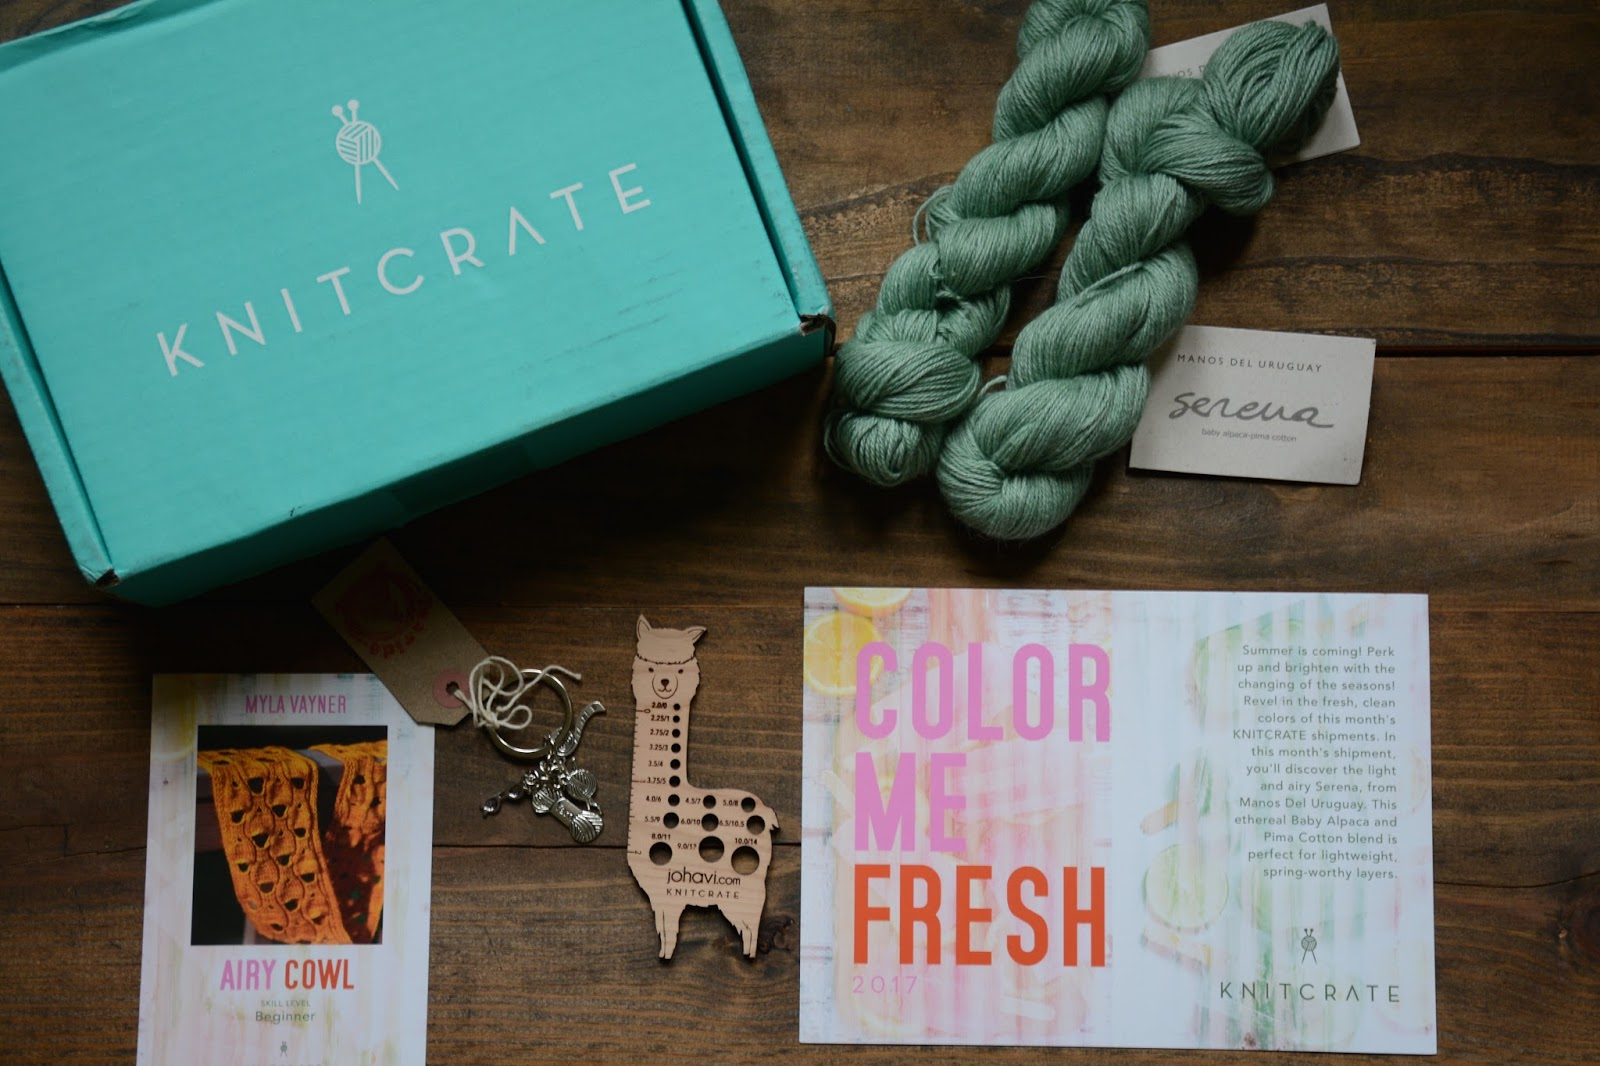 Knitcrate coupon code